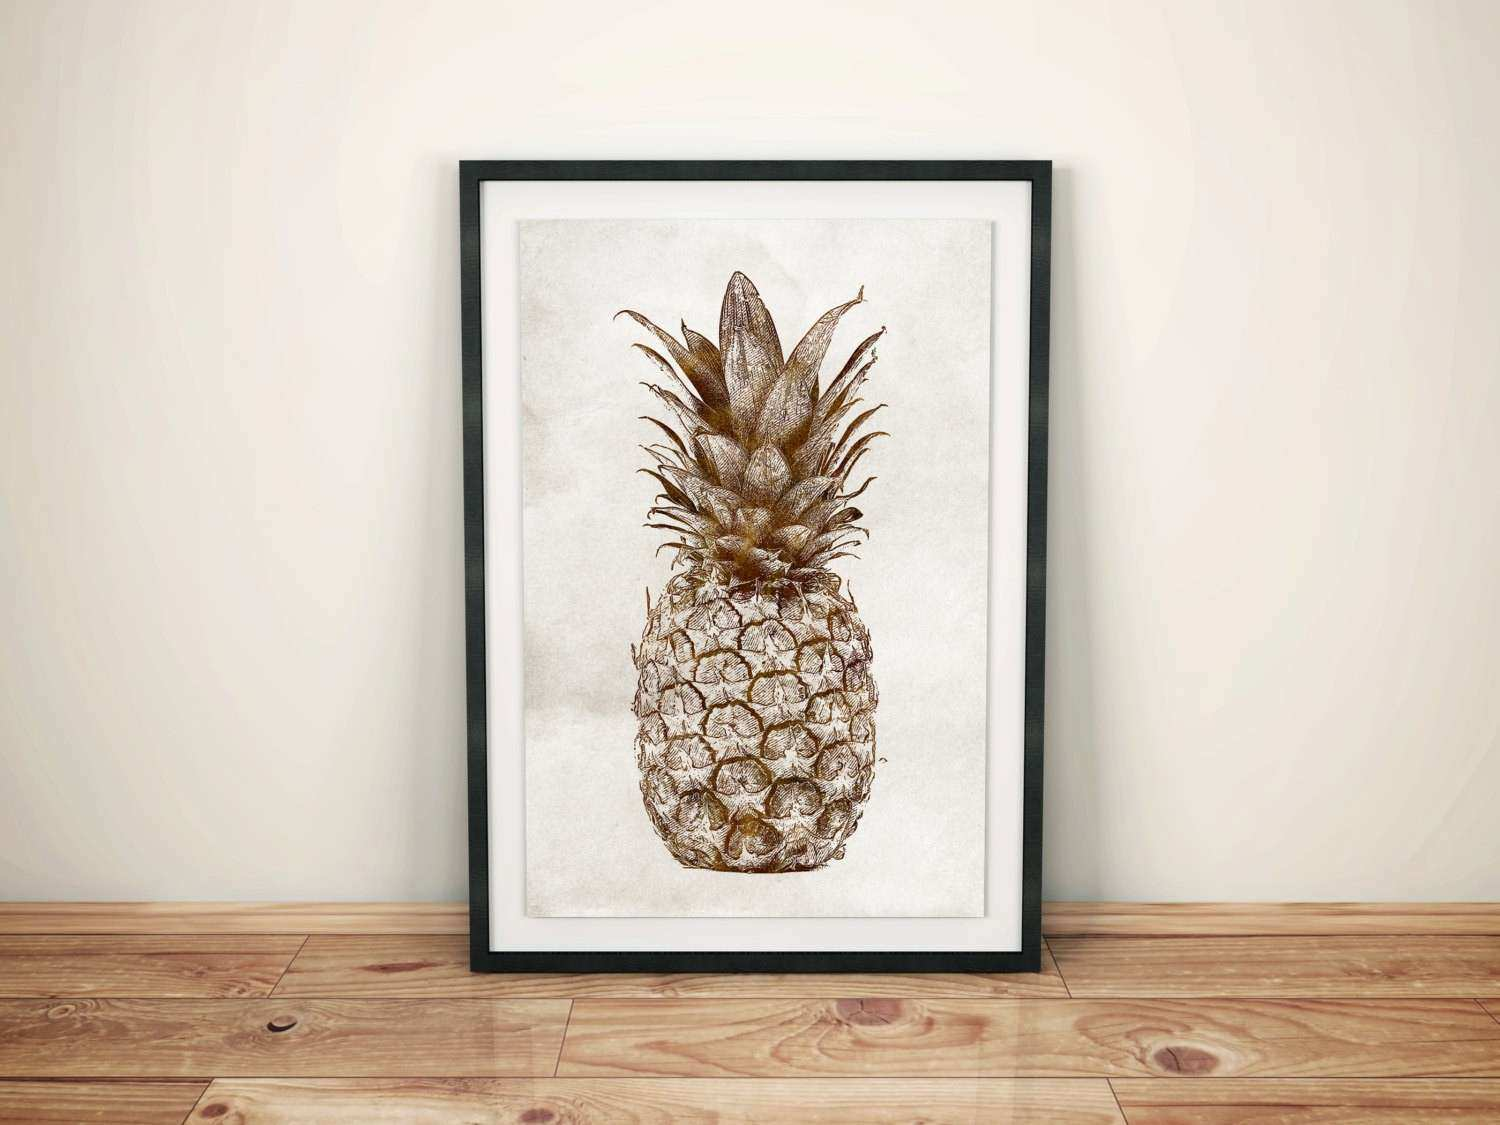 Pineapple Wall Decor Awesome Pineapple Wall Art Pineapple Print